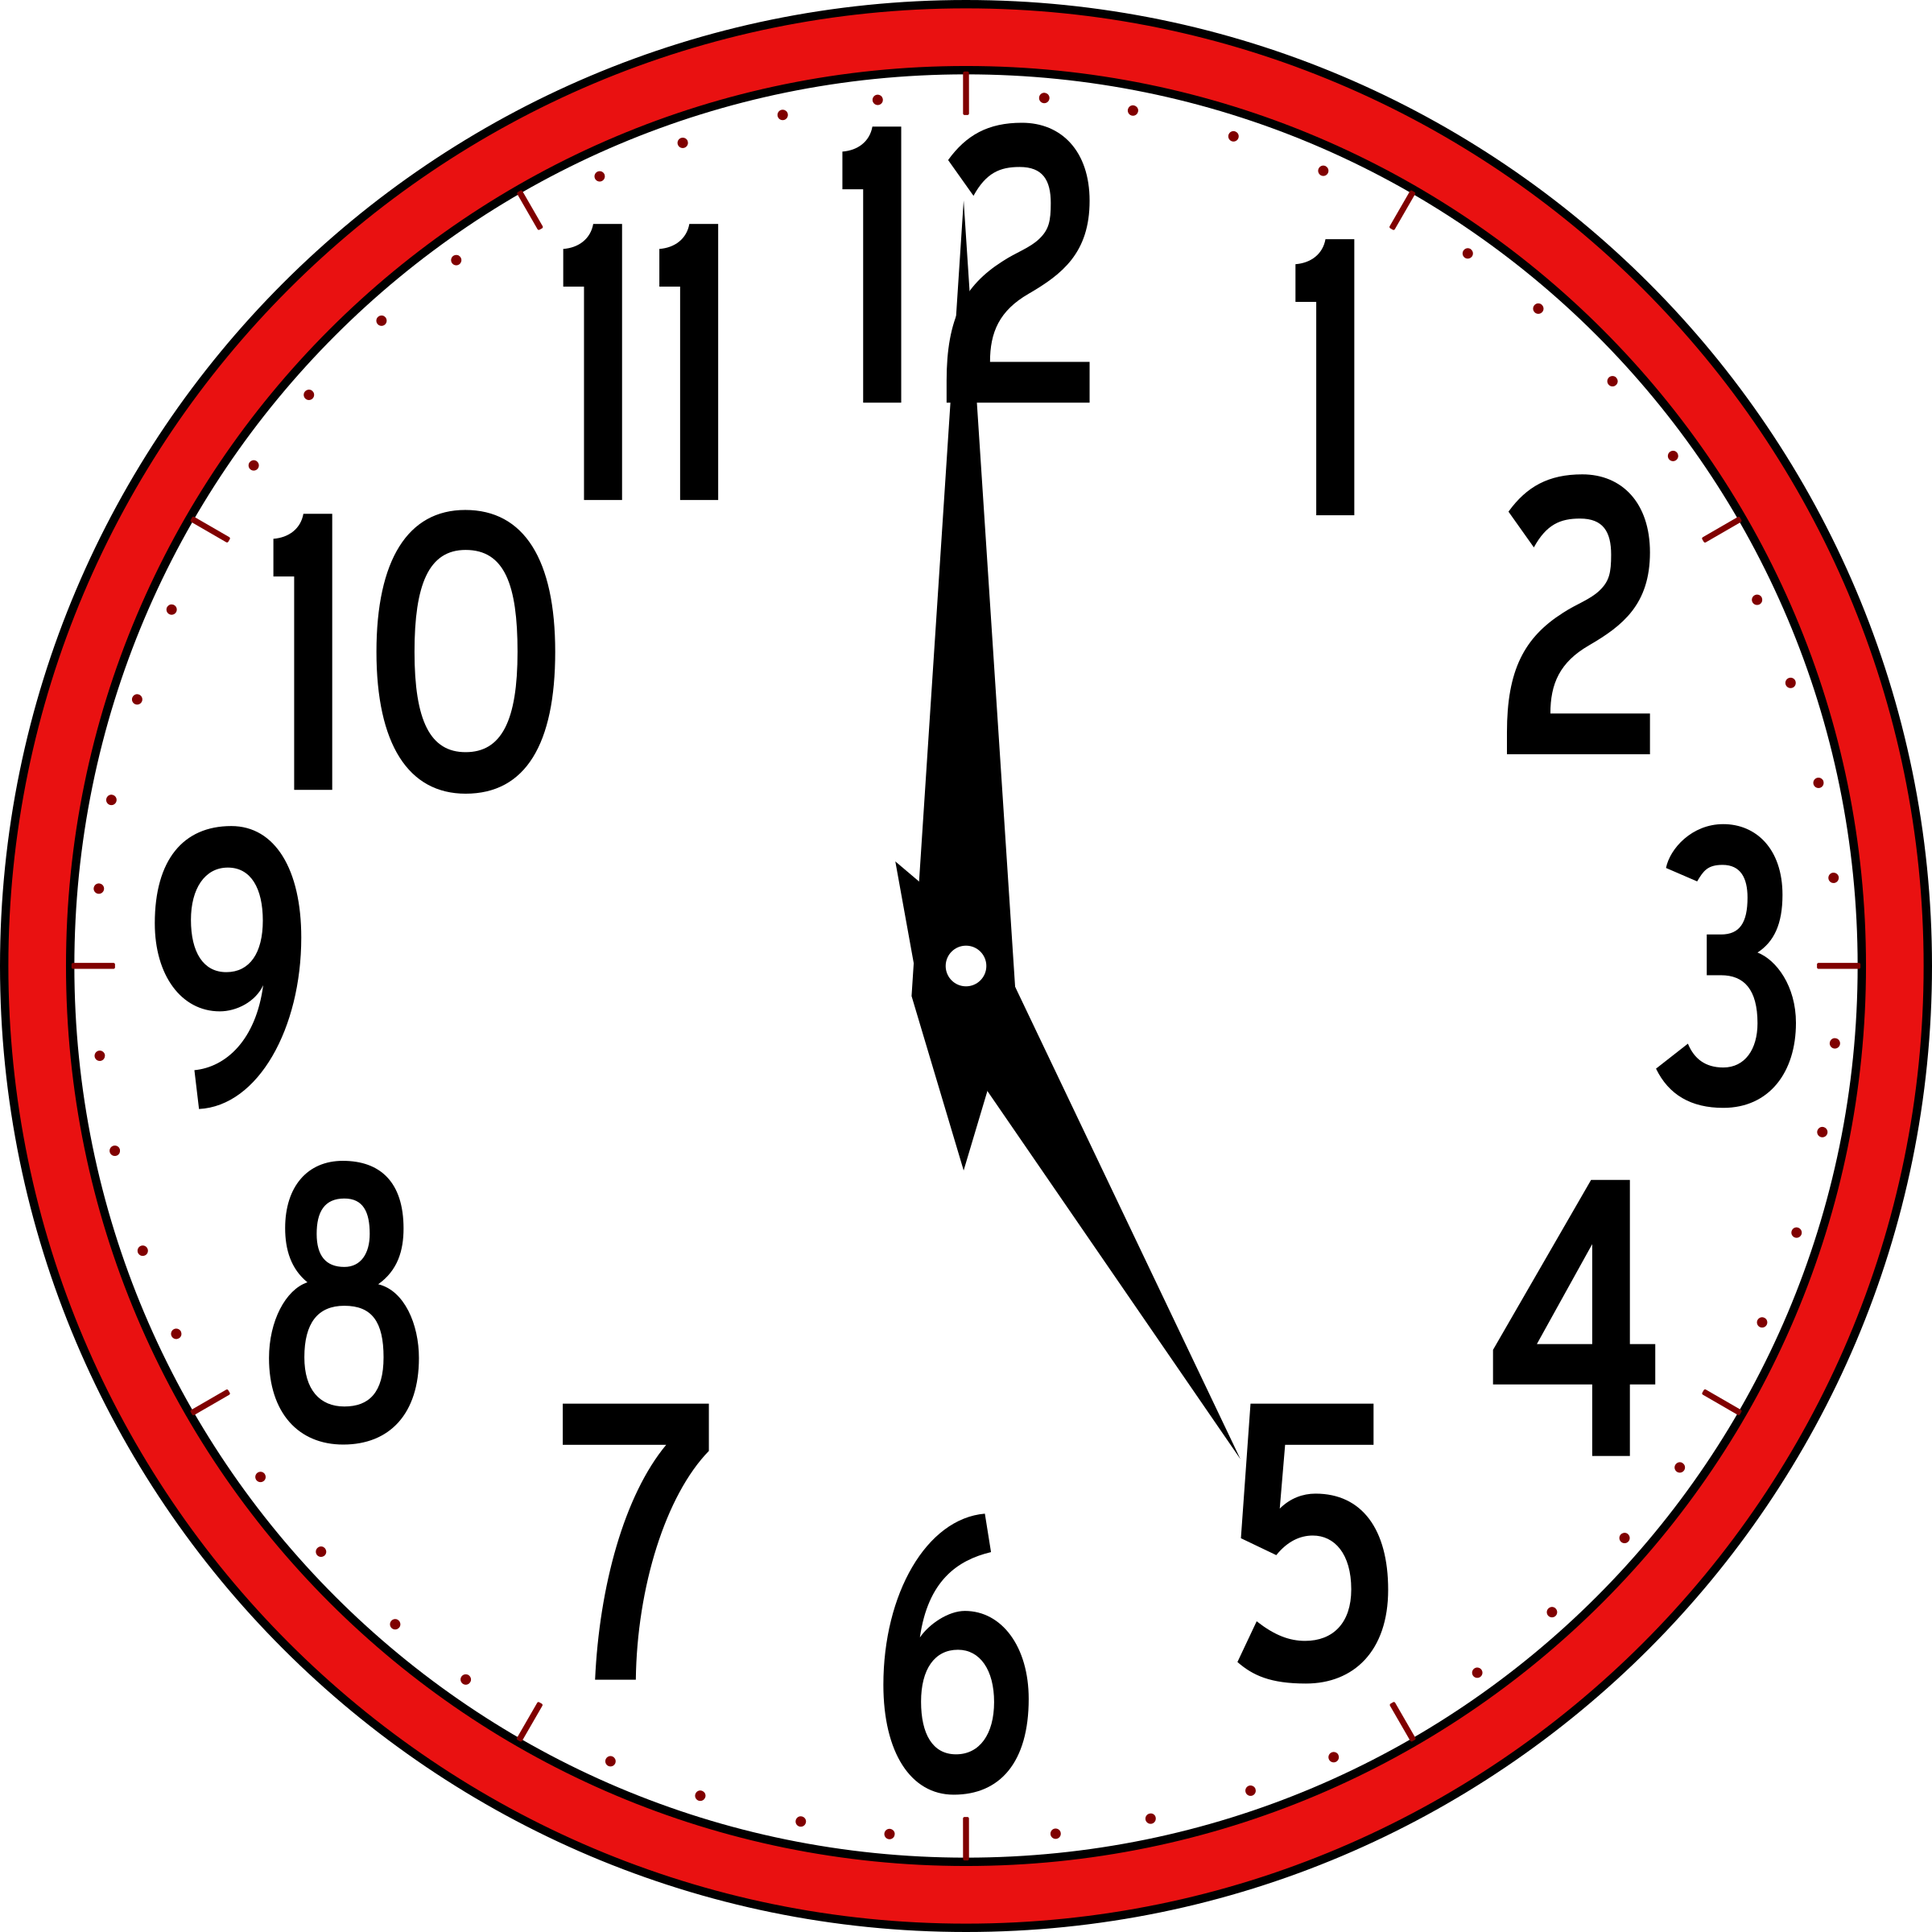 Change clipart ahead. Set clocks back clip